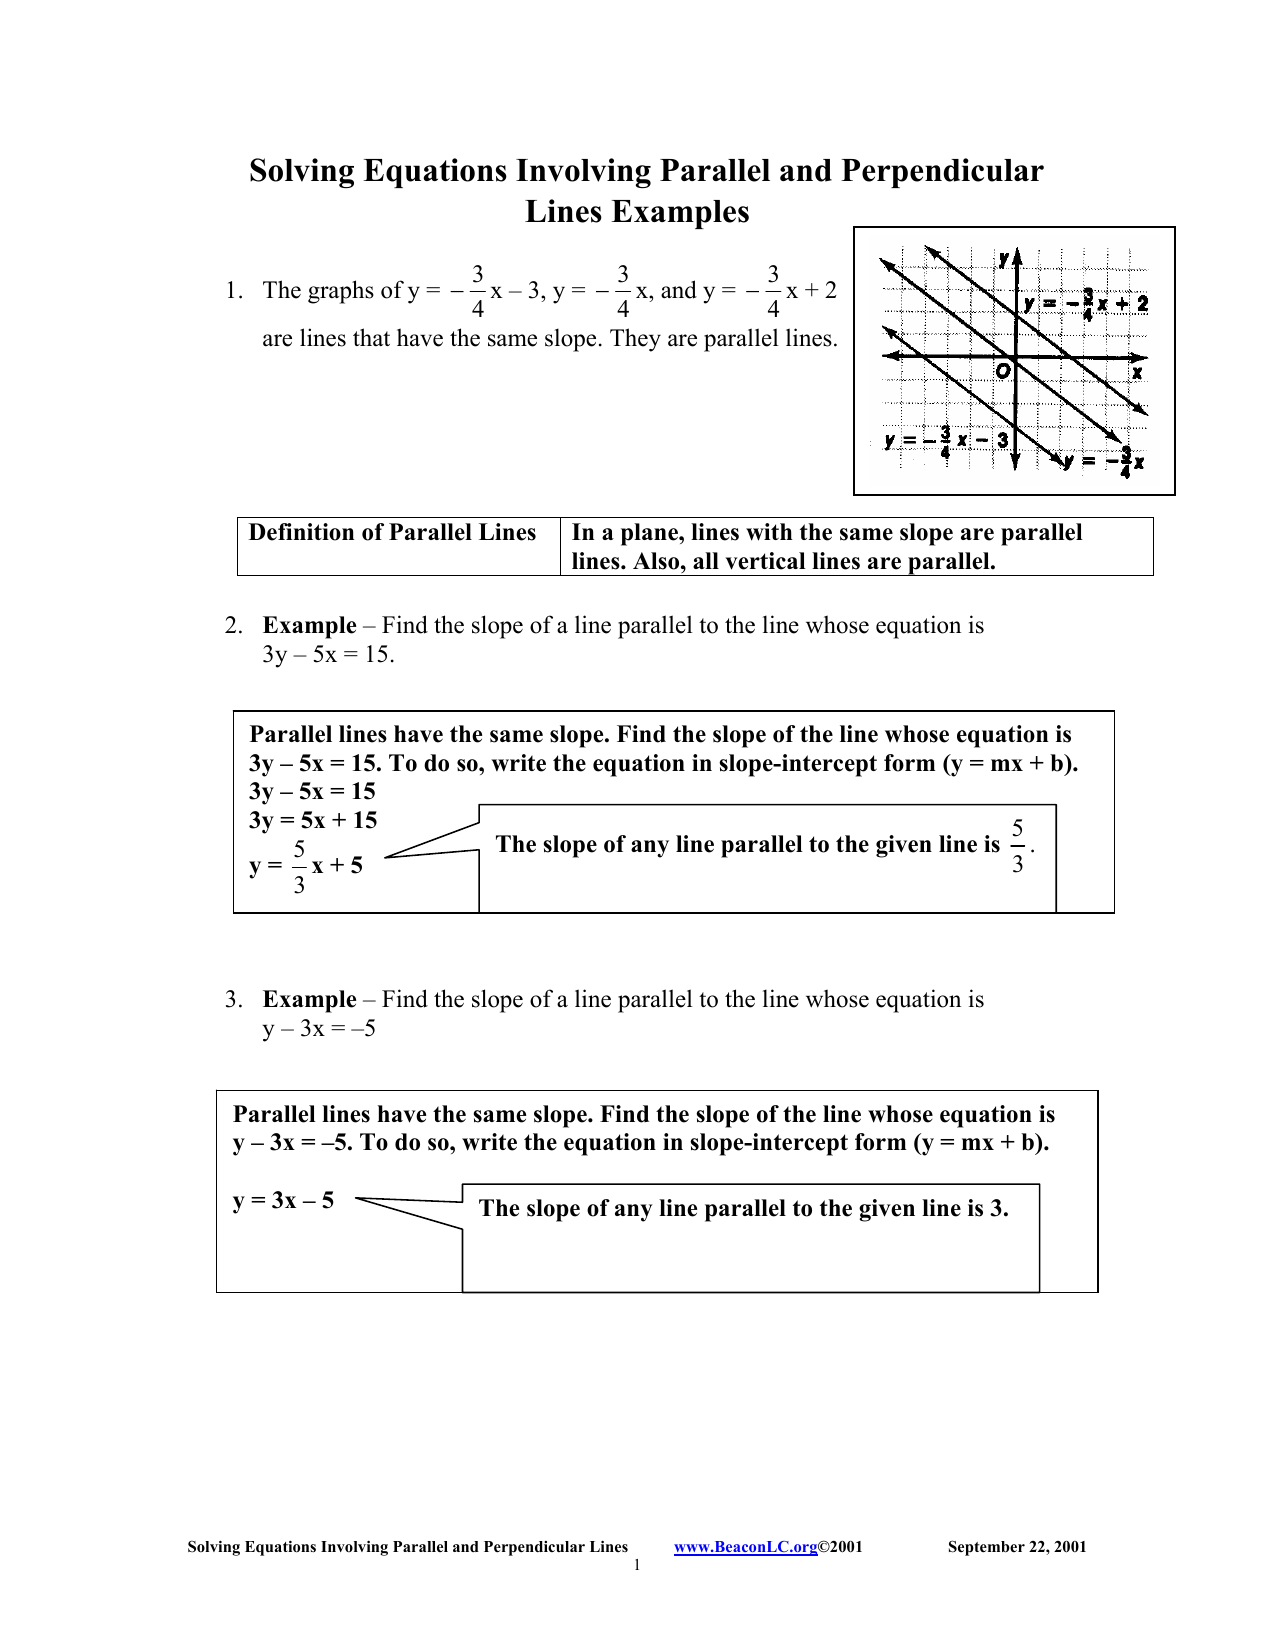 Worksheets Slope Of Parallel And Perpendicular Lines Worksheet this file will contain solving equations involving parallel and